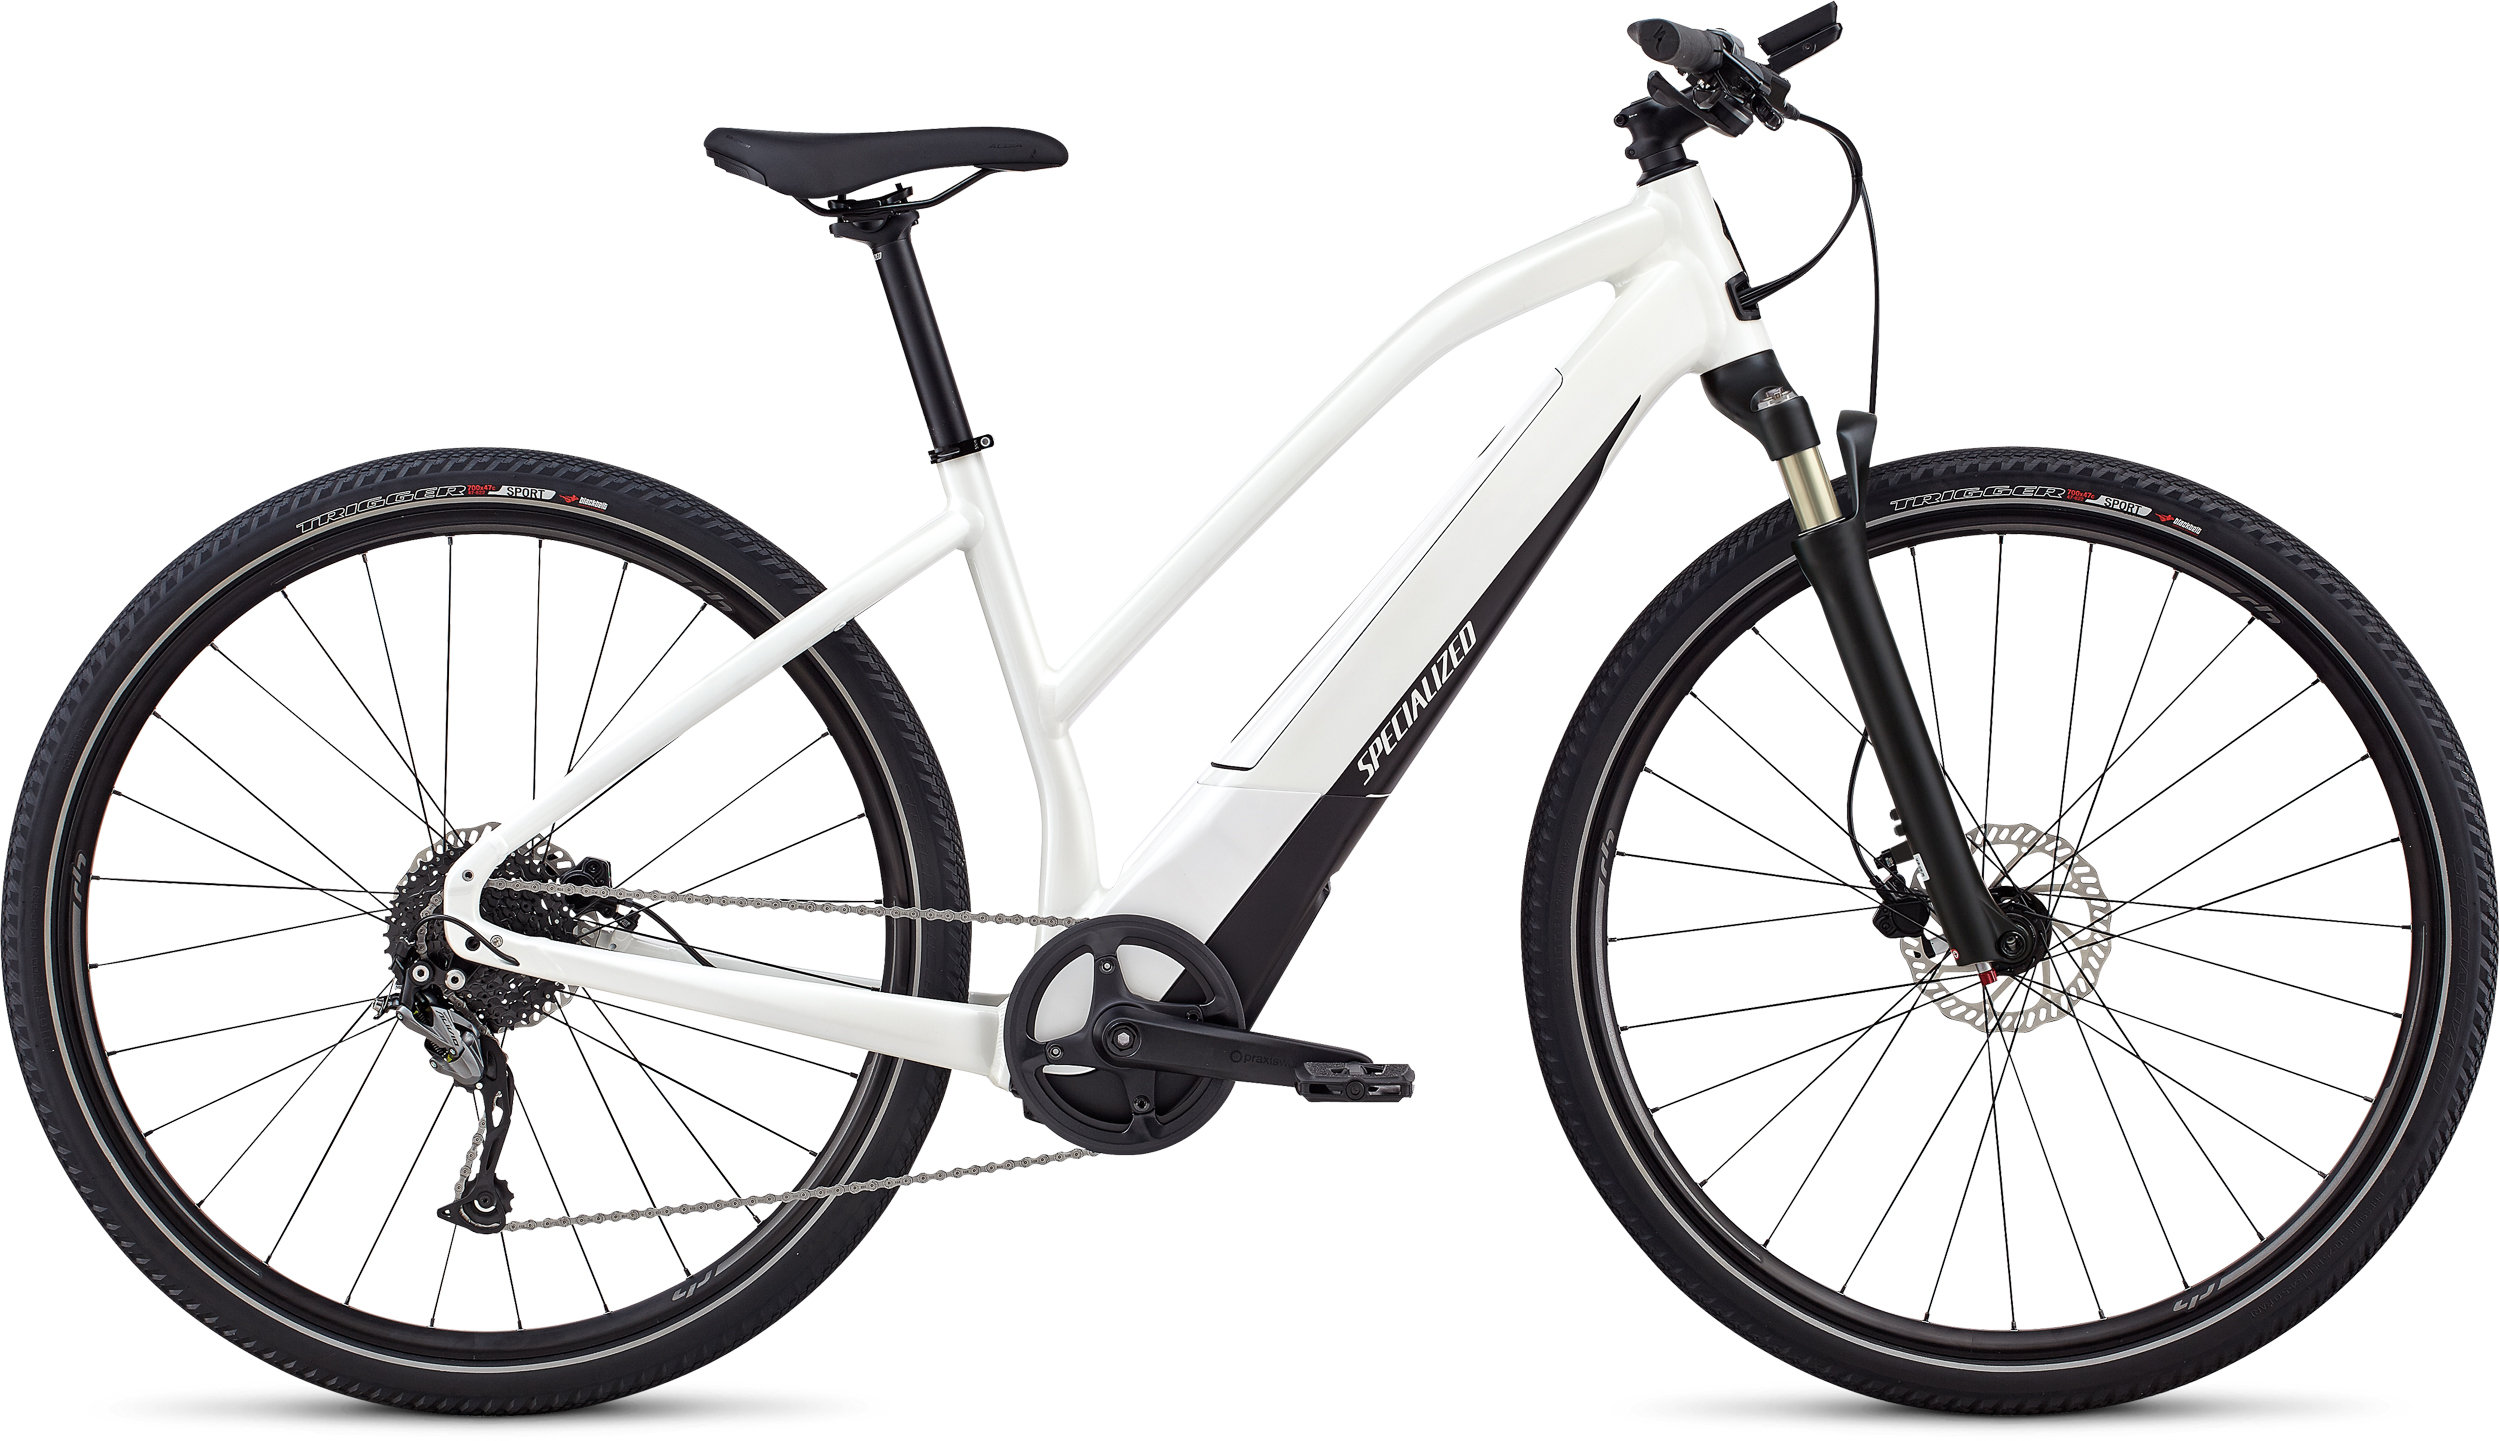 Specialized Women´s Turbo Vado 2.0 Satin Metallic White Silver / Black LG - Randen Bike GmbH